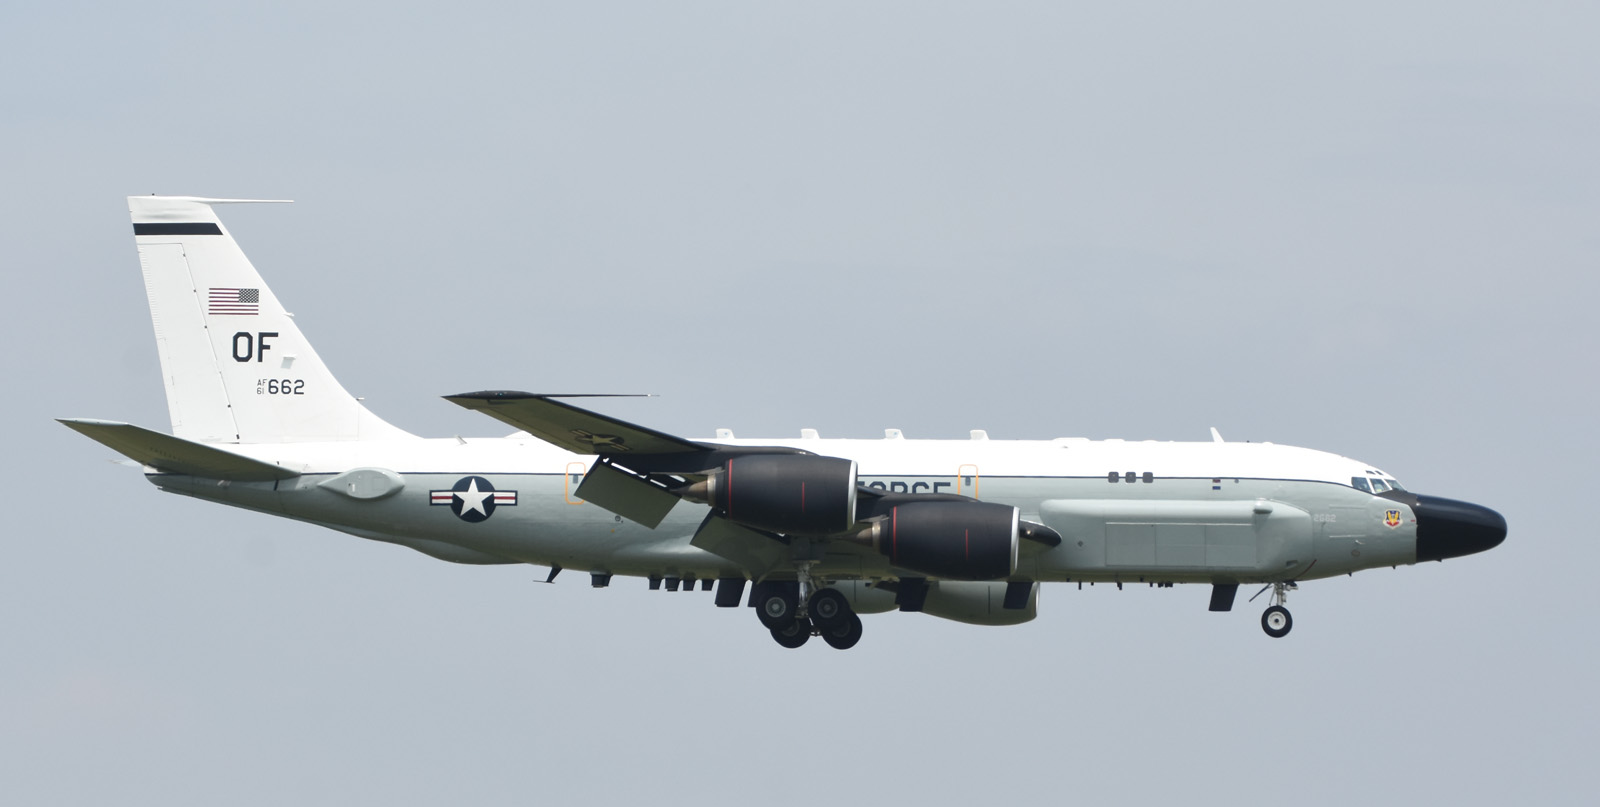 Rc135s170703g568